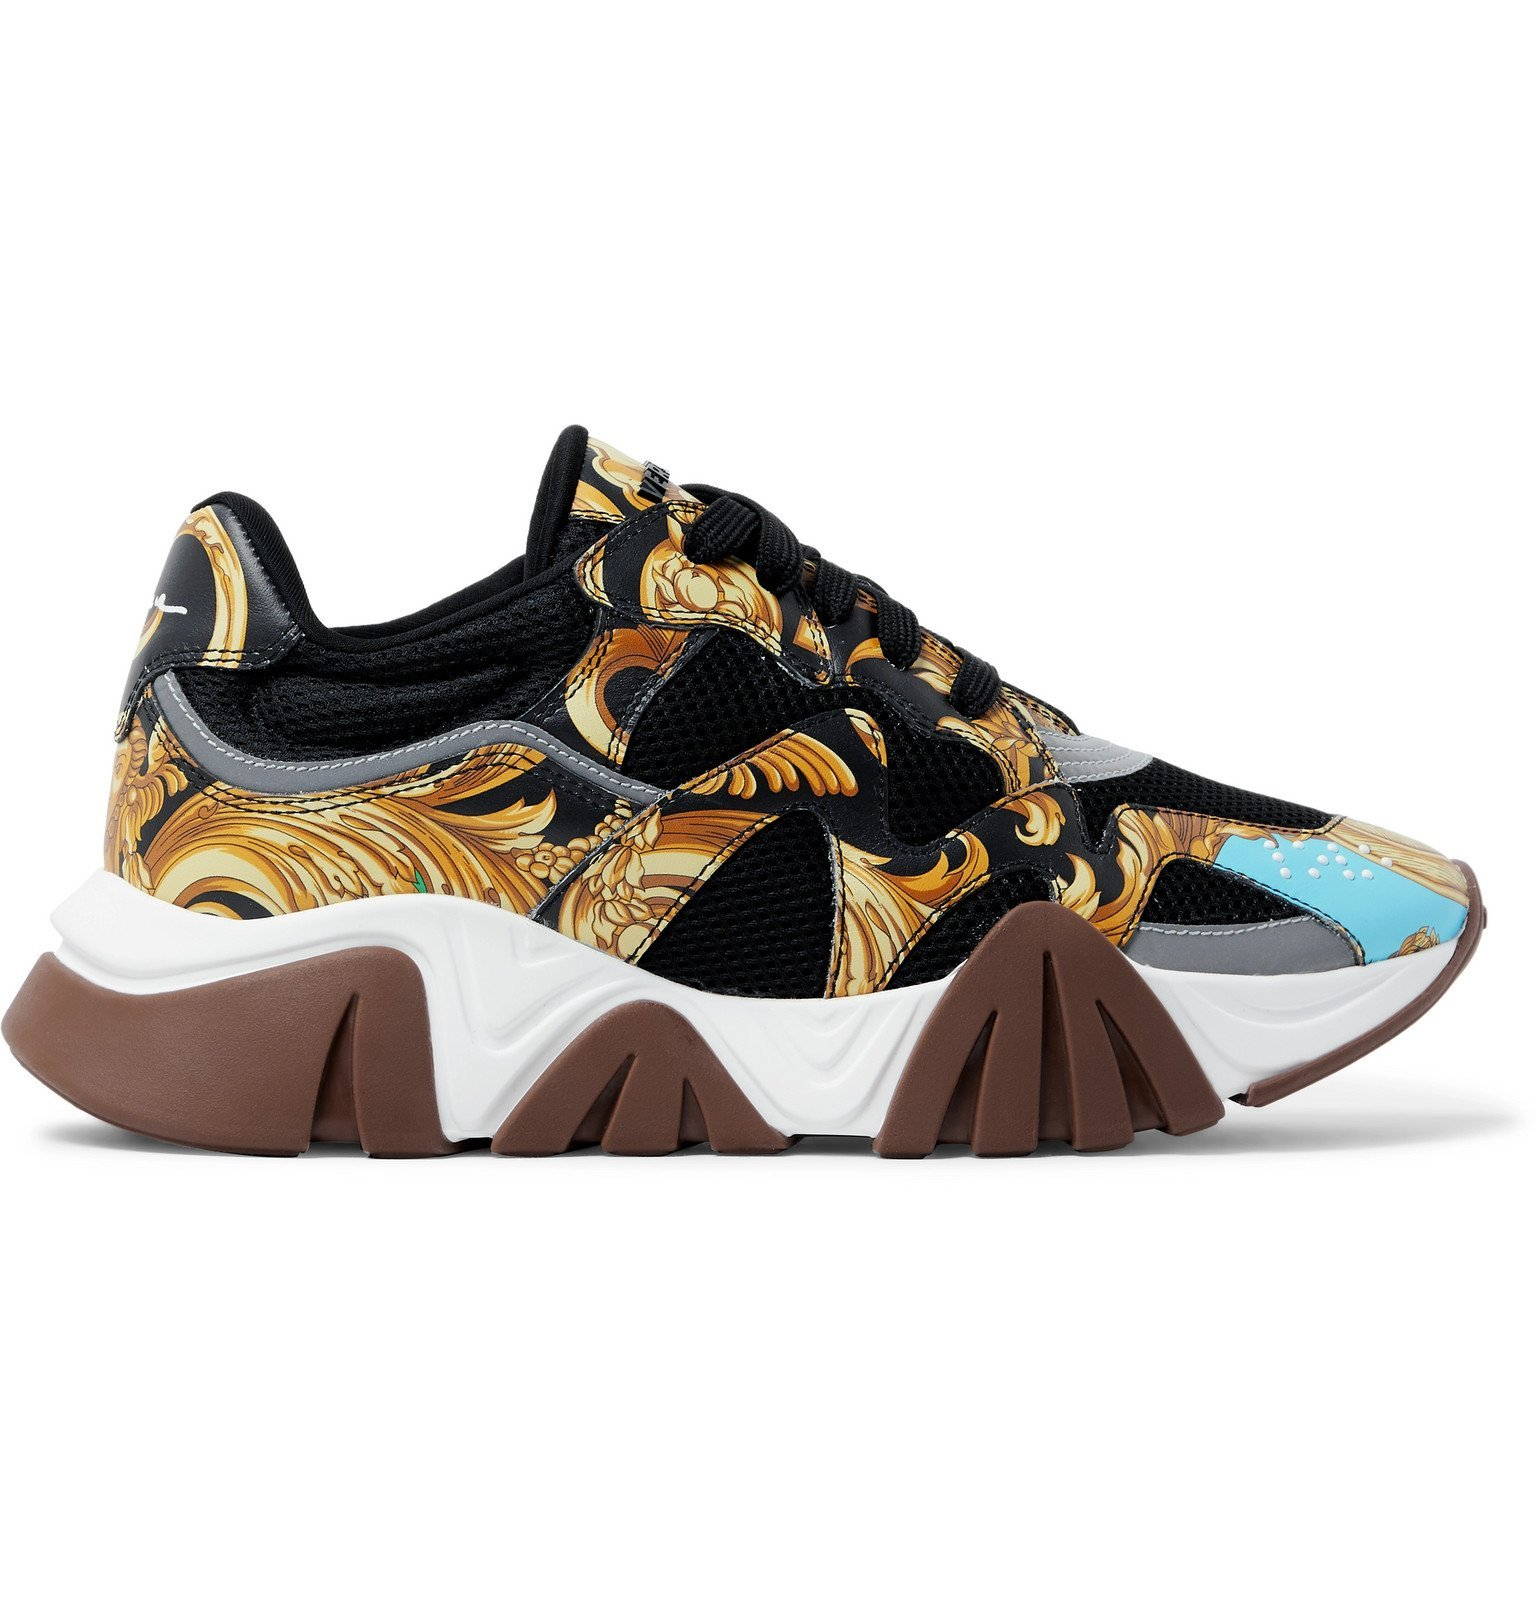 Versace - Squalo Printed Leather and Mesh Sneakers - Black